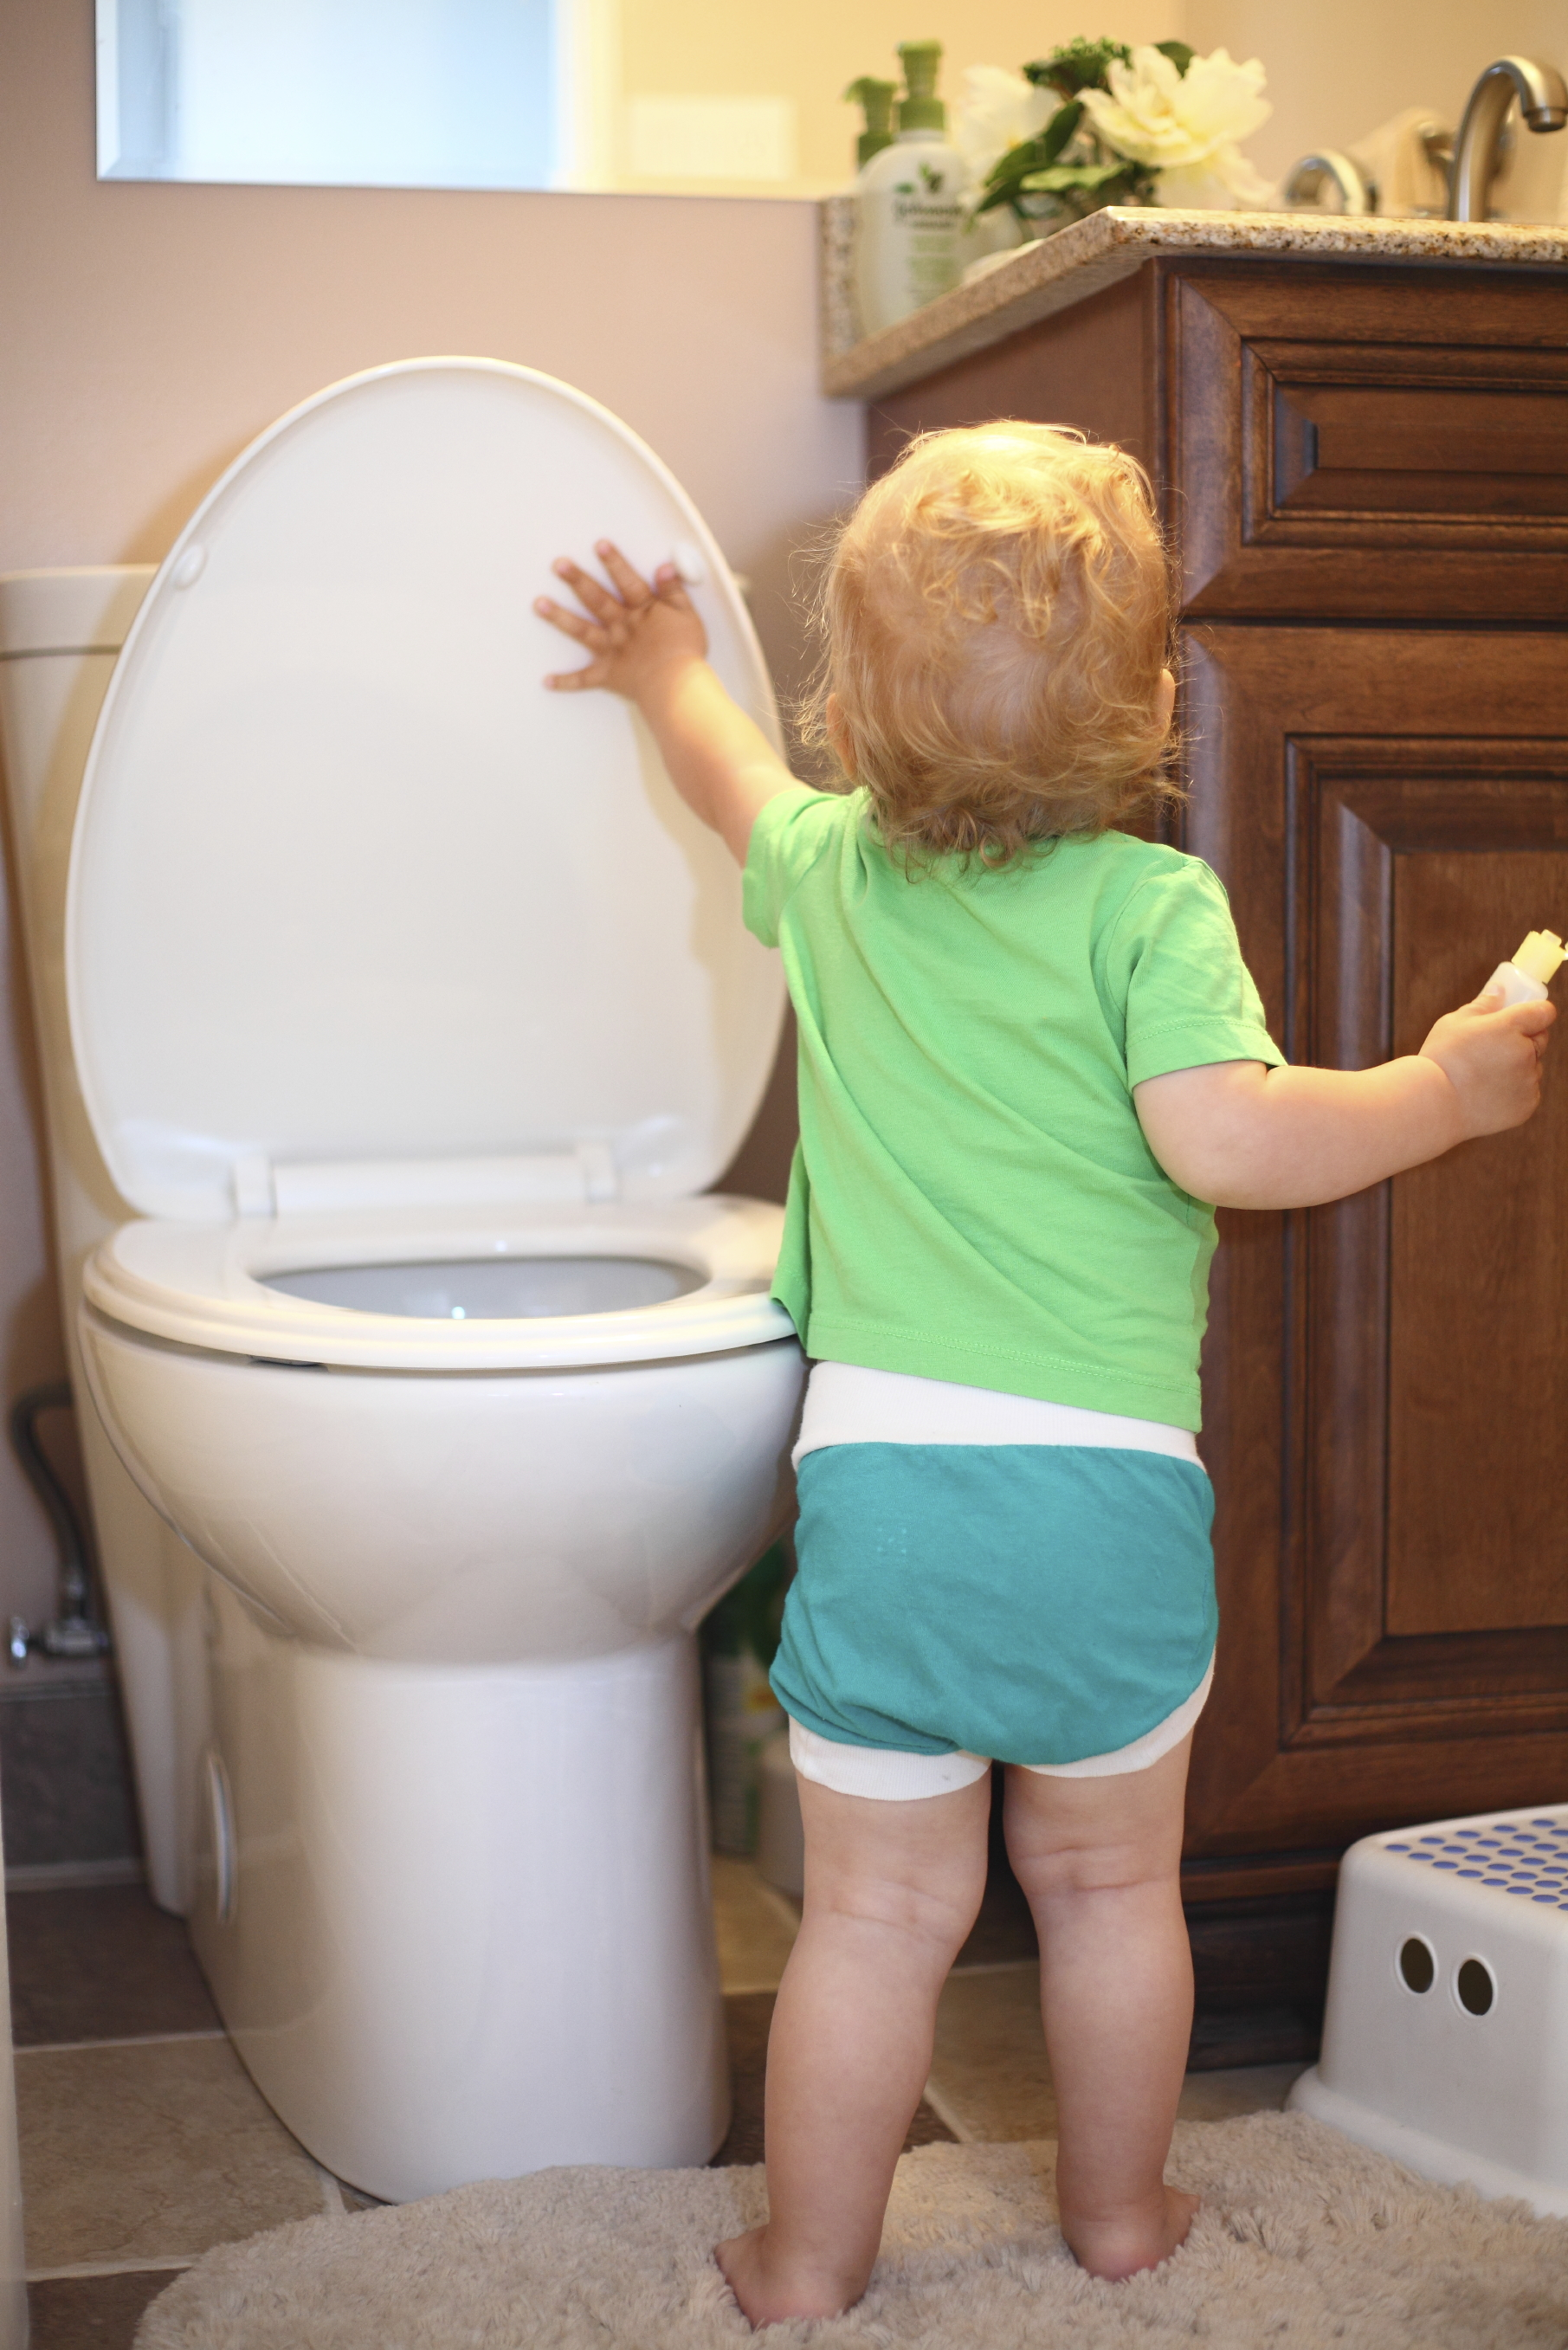 Childproofing A Water Hazard In Your Home The Toilet